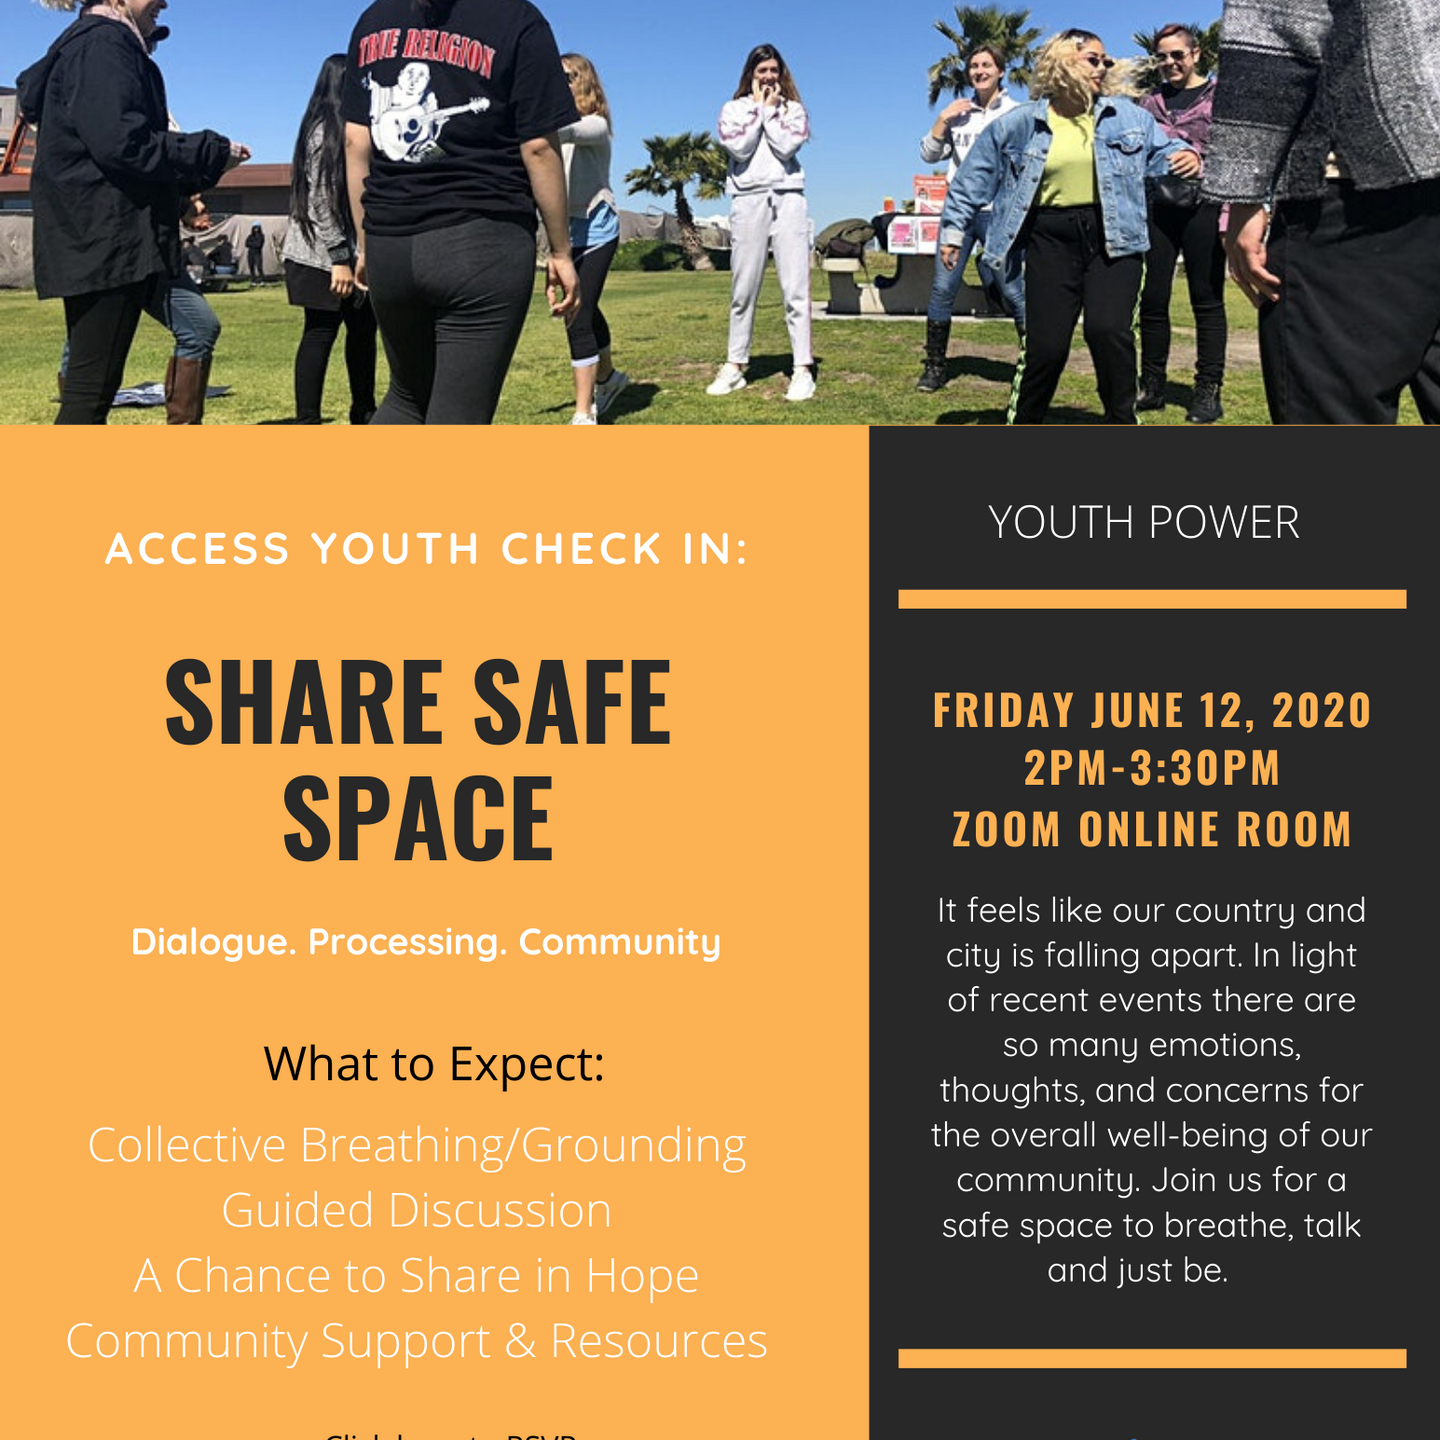 Share Safe Space w/ Access